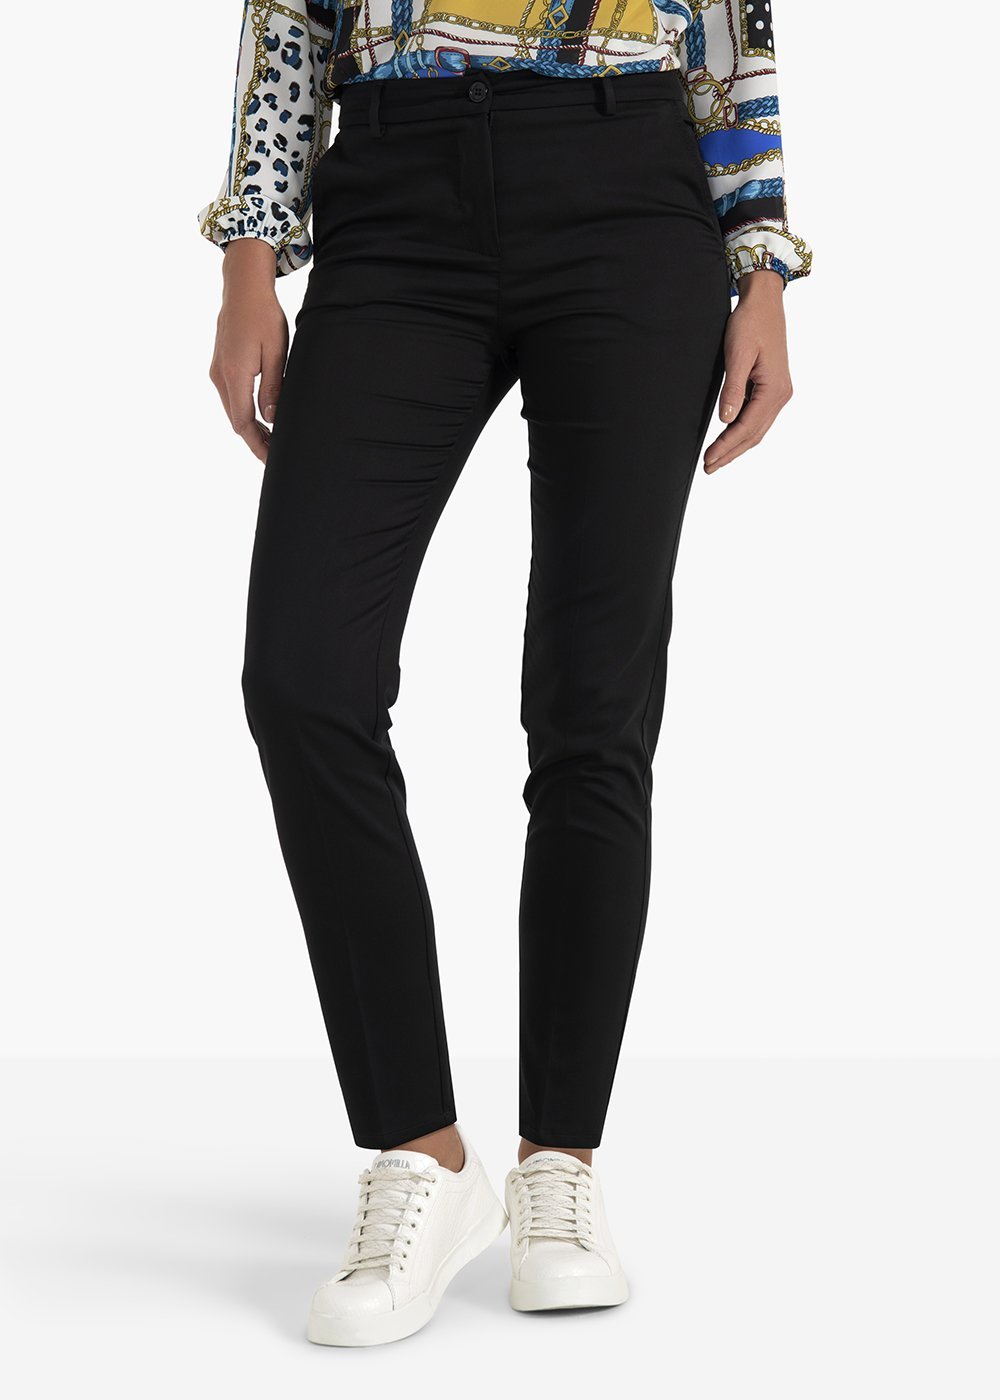 Clair pants Hunter  model in polycotton - Black - Woman